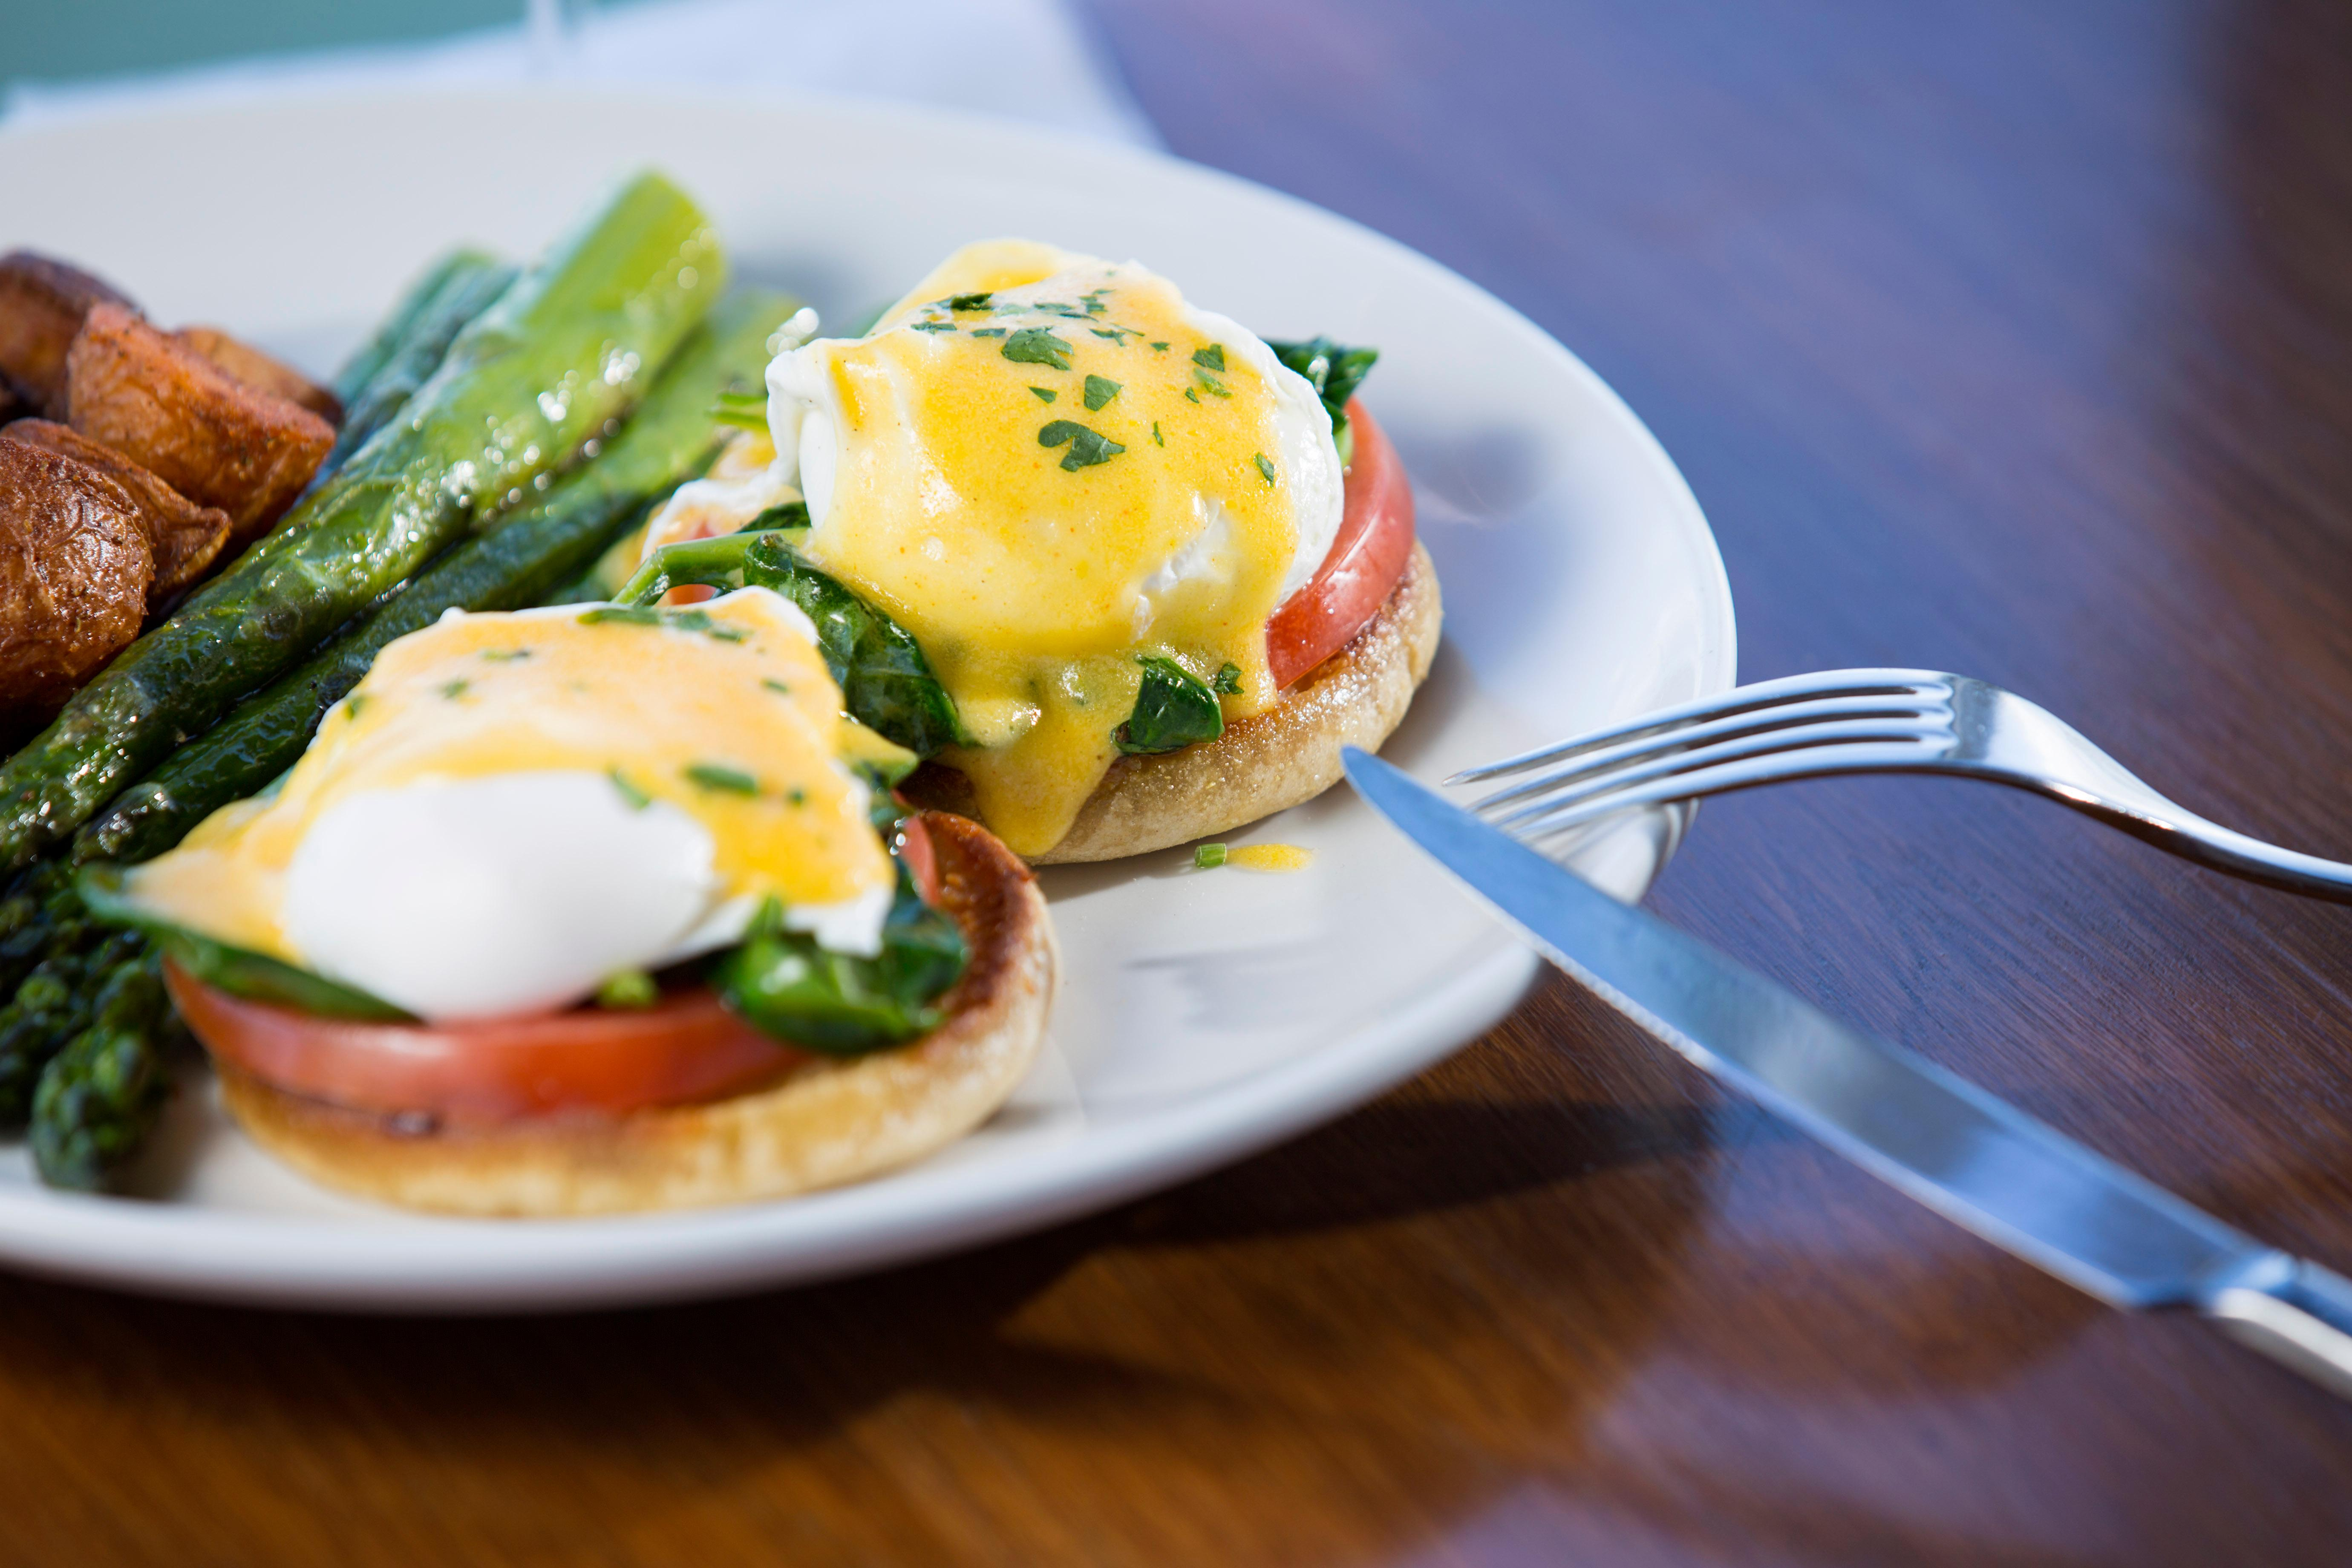 The Florentine Benedict, made with poached eggs, spinach, tomato, on english muffins, covered in hollandaise, and served with a side of asparagus and Old Bay breakfast potatoes. There is also an option to add dungeness crab to your meal. Ray's Boathouse launched its first ongoing weekend brunch for the first time in its 44-year history, and guests can now enjoy Ray's beautiful setting over brunch each weekend. (Sy Bean / Seattle Refined)